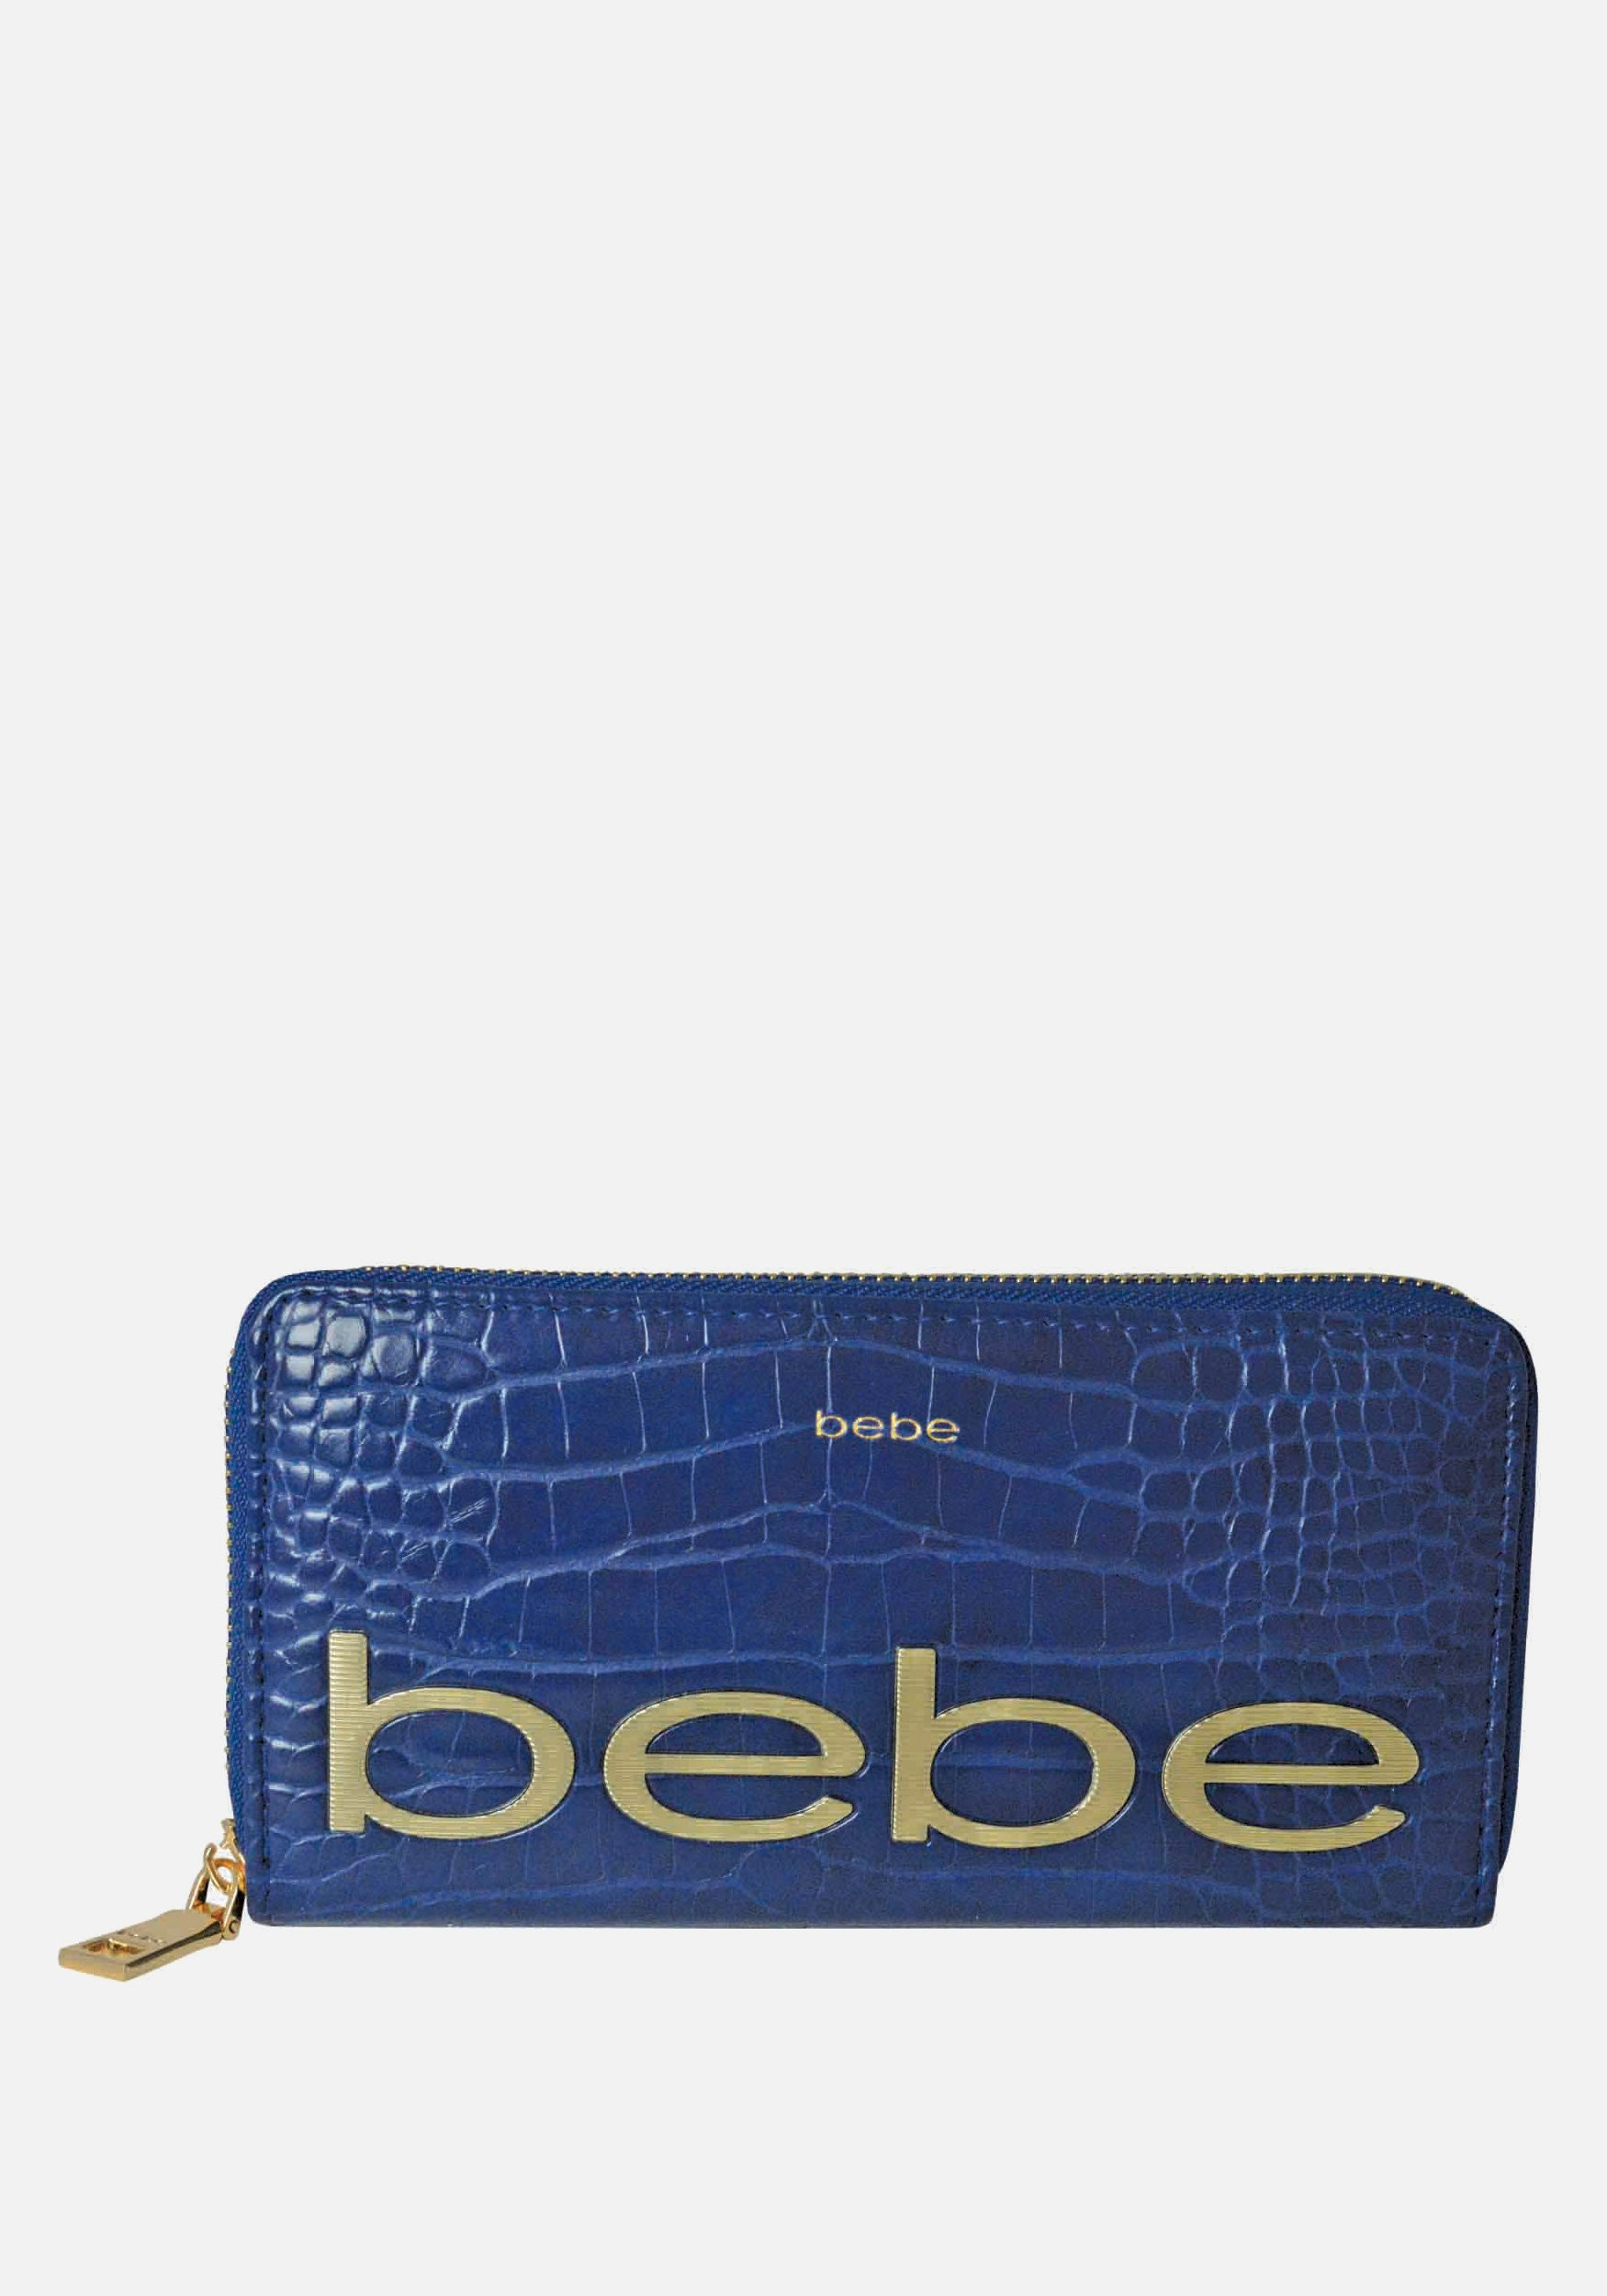 Bebe Women's Fabiola Stamped Wallet in Navy Blue Polyester